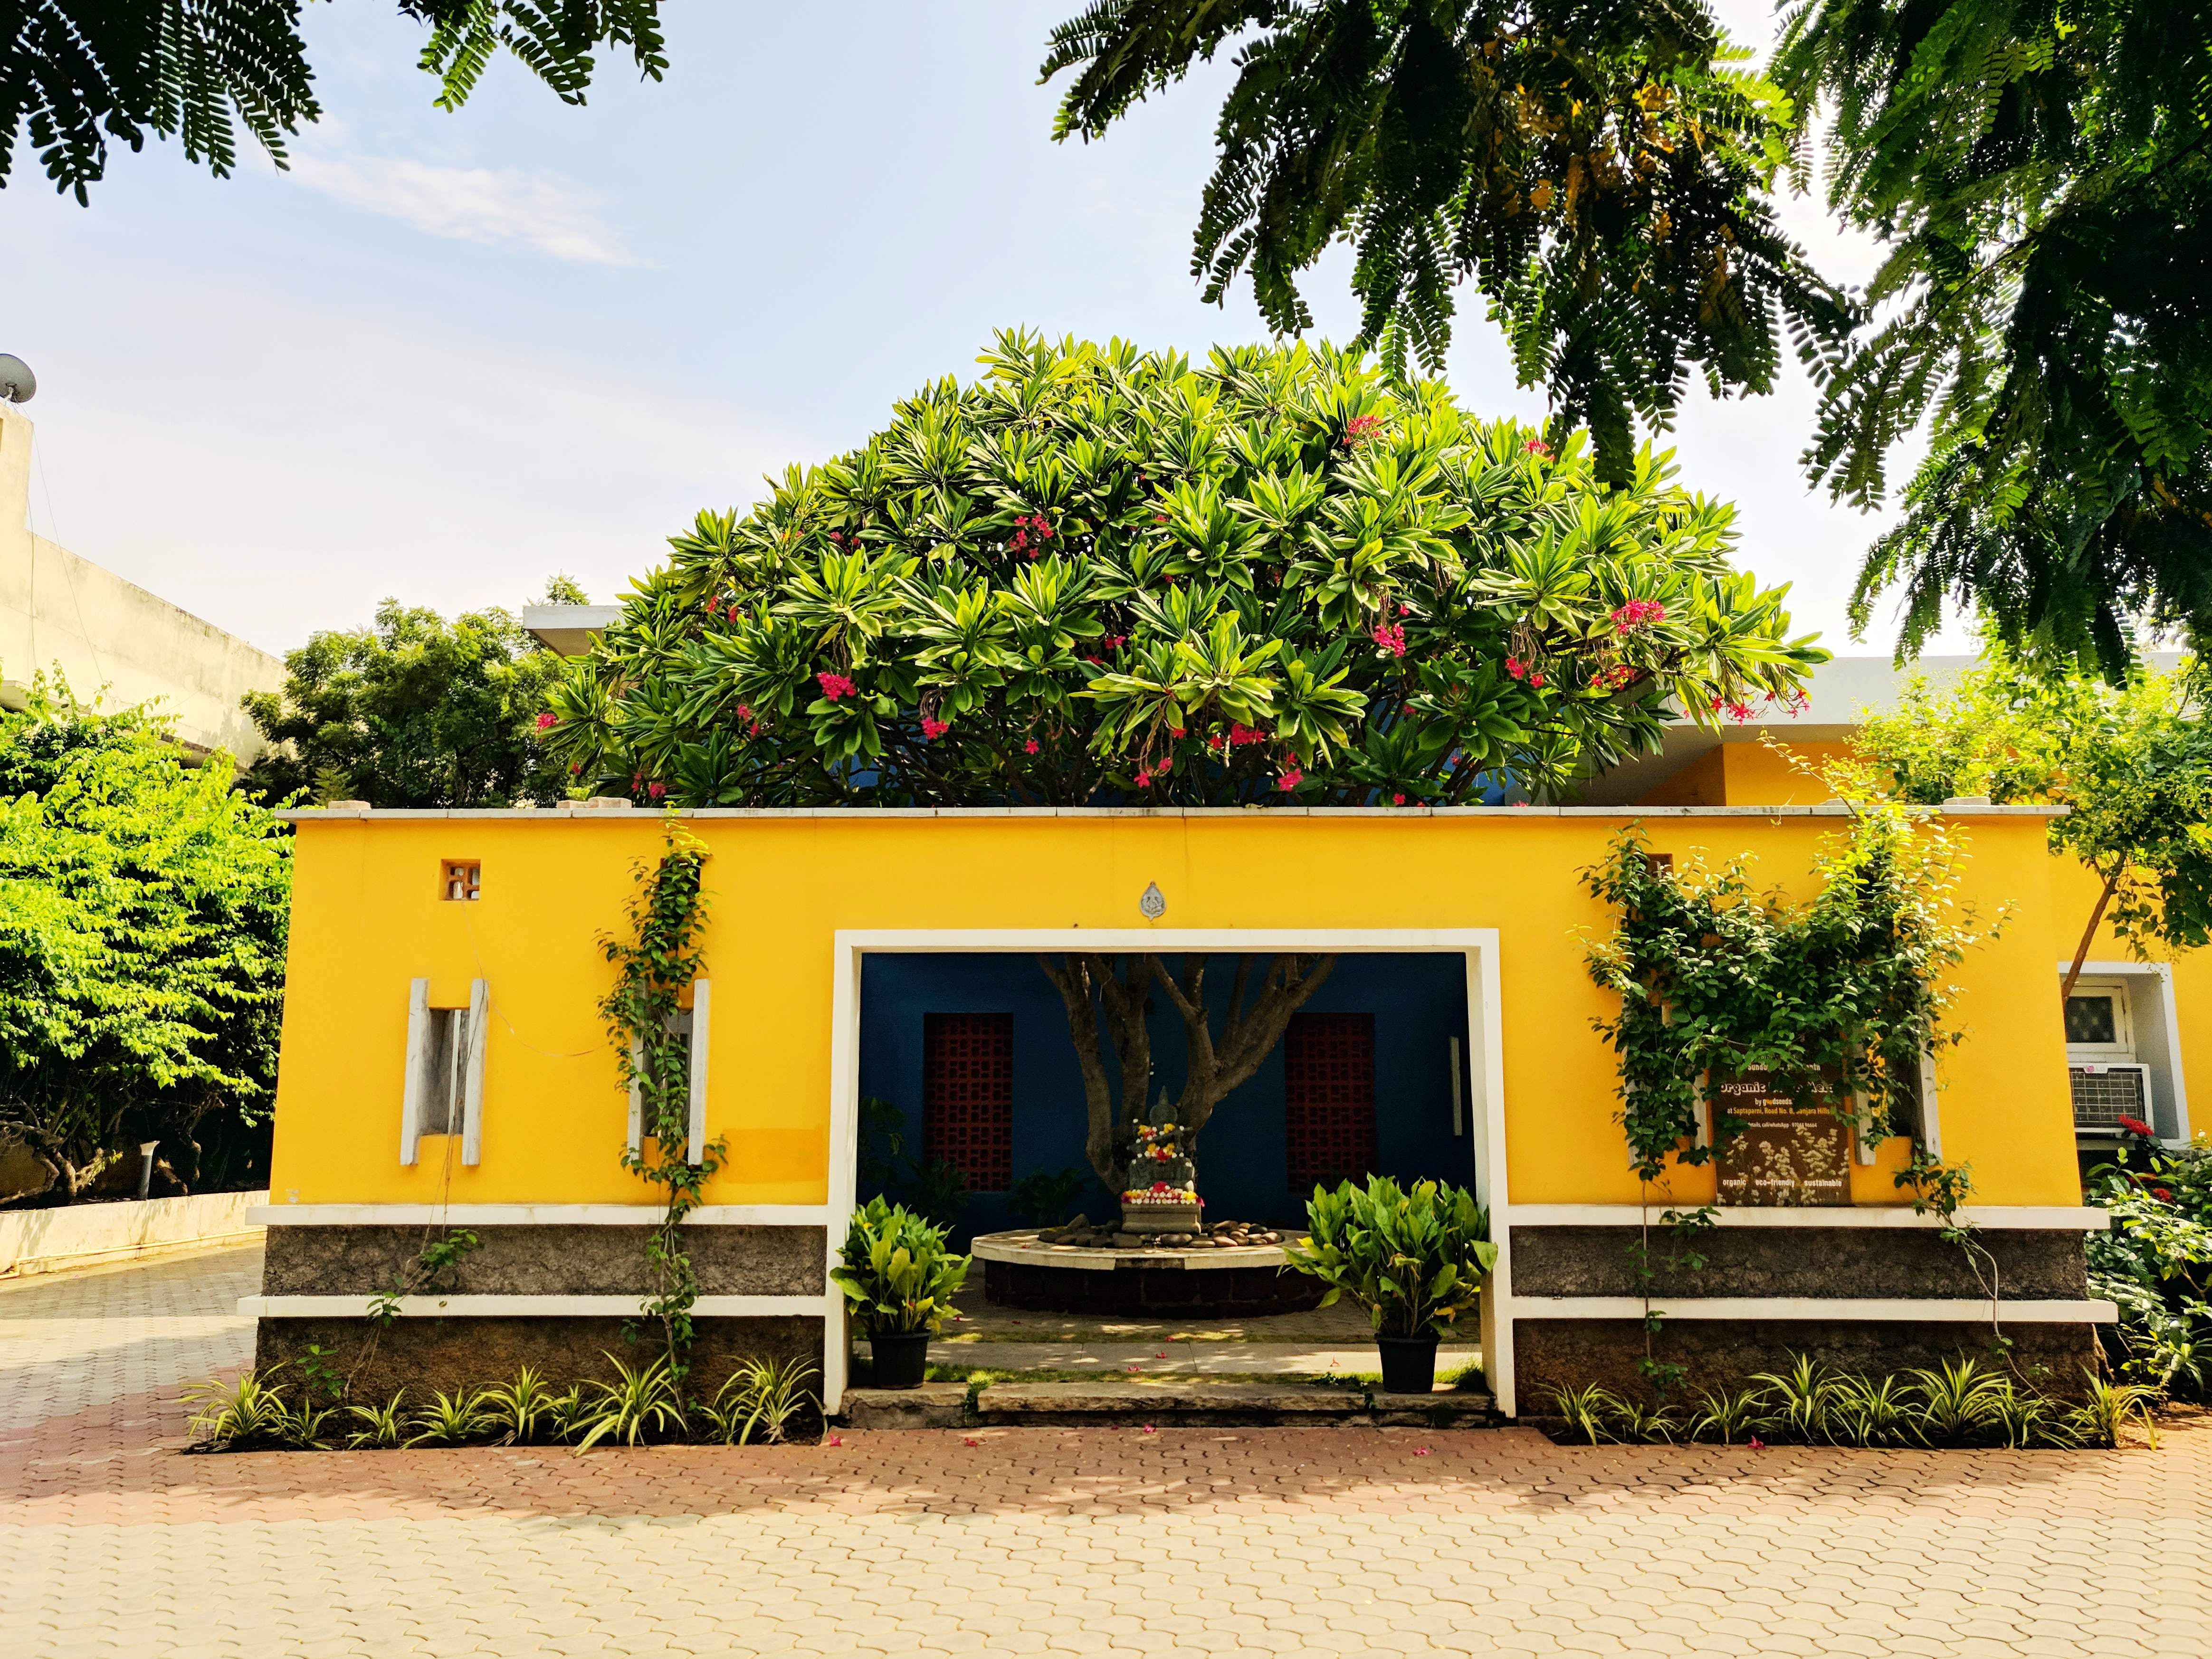 House,Property,Vegetation,Home,Yellow,Building,Tree,Architecture,Real estate,Sky